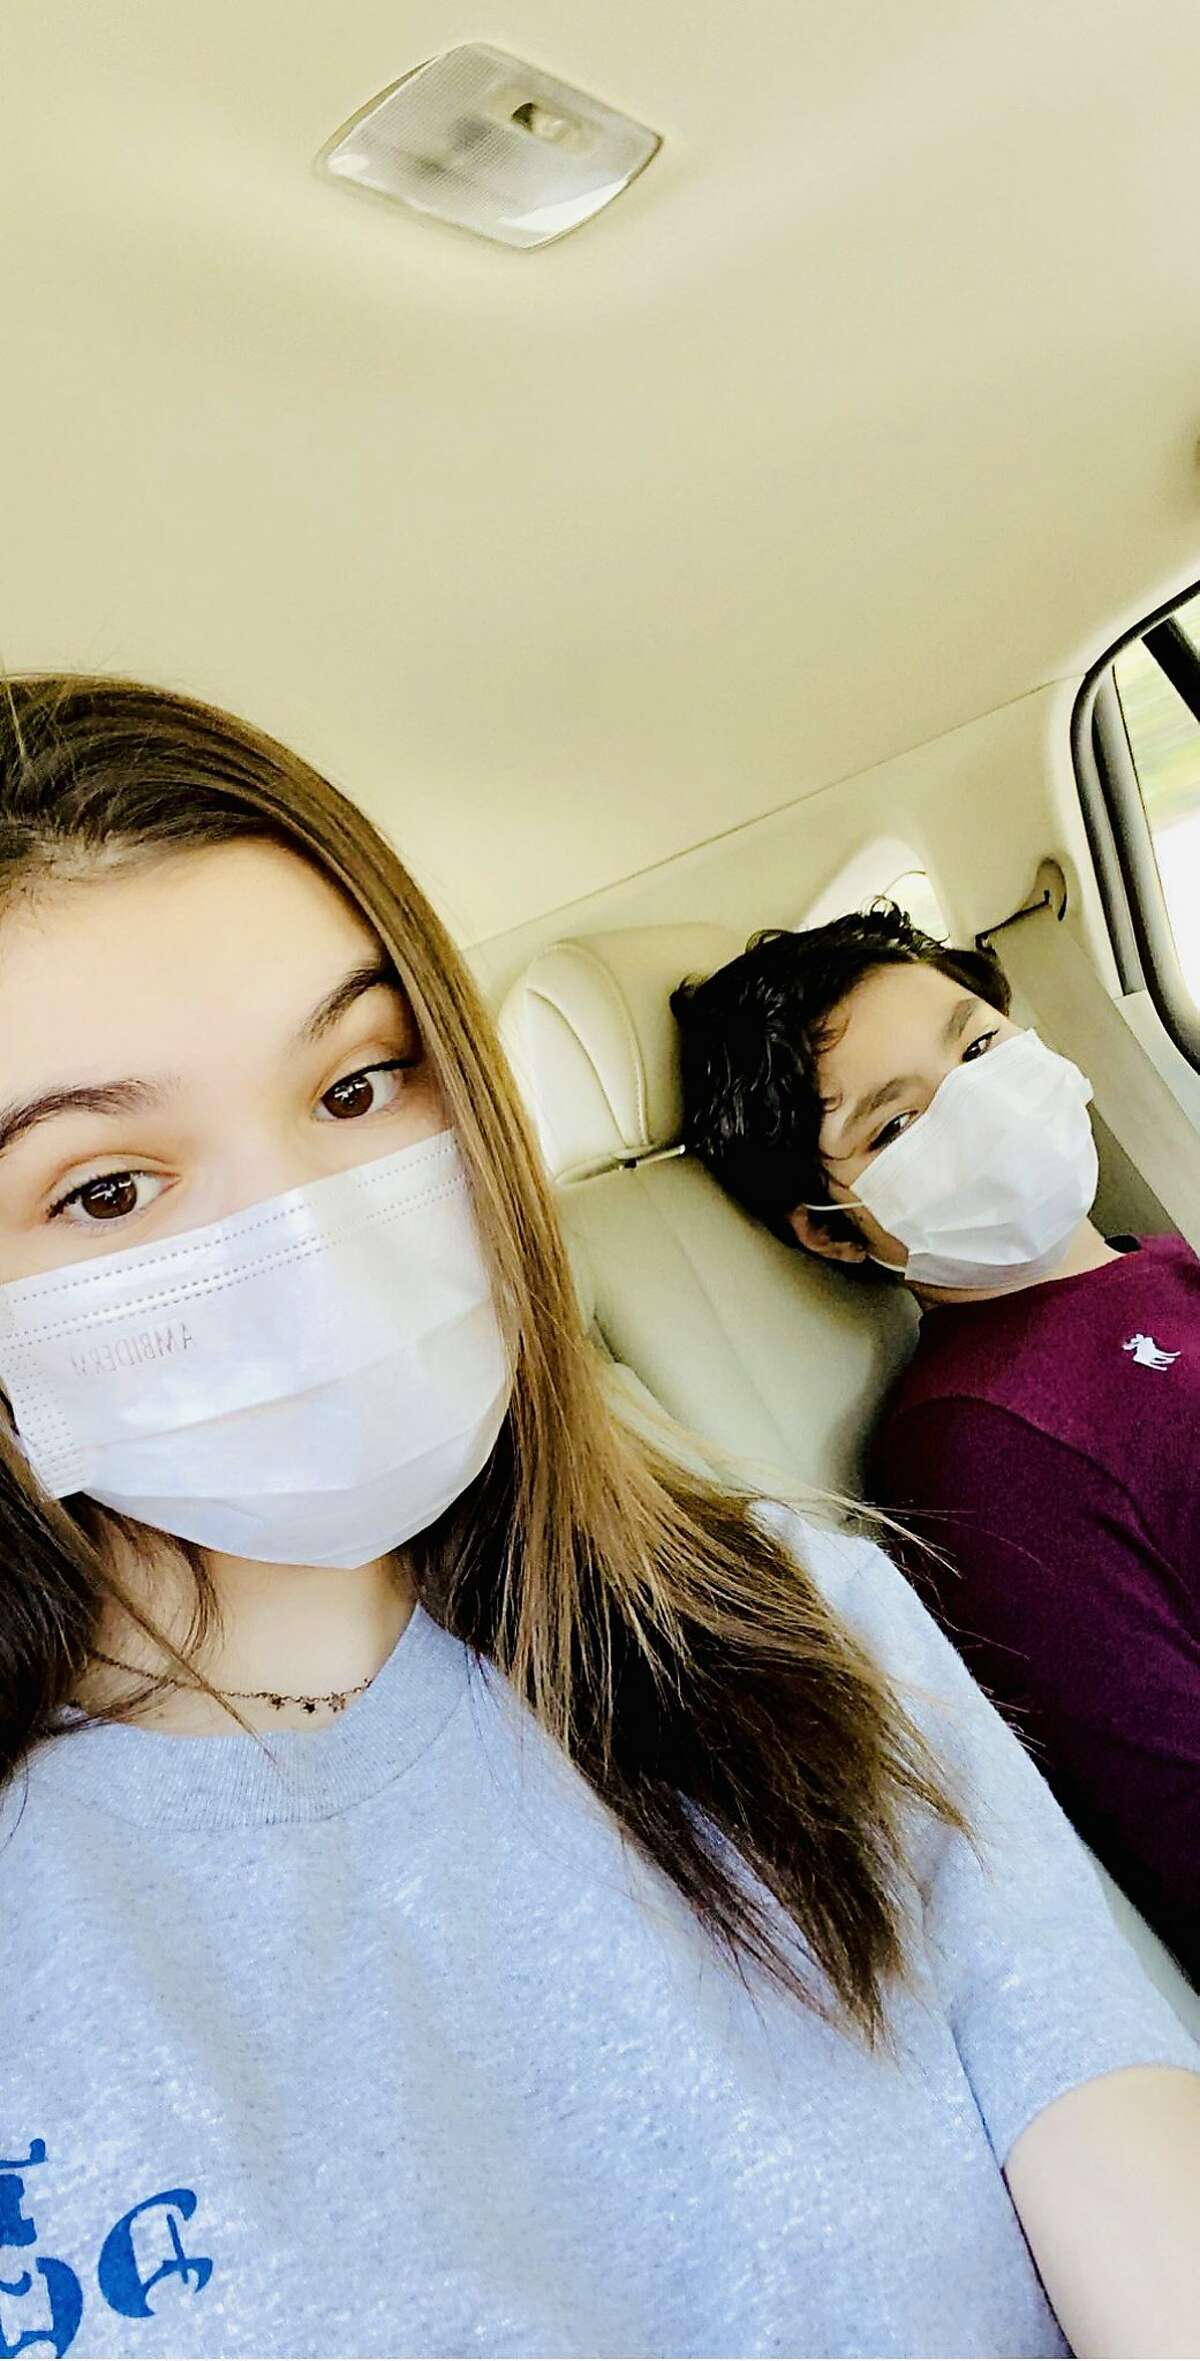 Natalia and Santiago Ruspini on the way to get tested for COVID-19 on April 30, a month after positive results for themselves, their parents, and their family. Their nanny and father were hospitalized but recovered. Natalia tested negative a day later, on May 1, Santiago on May 8.